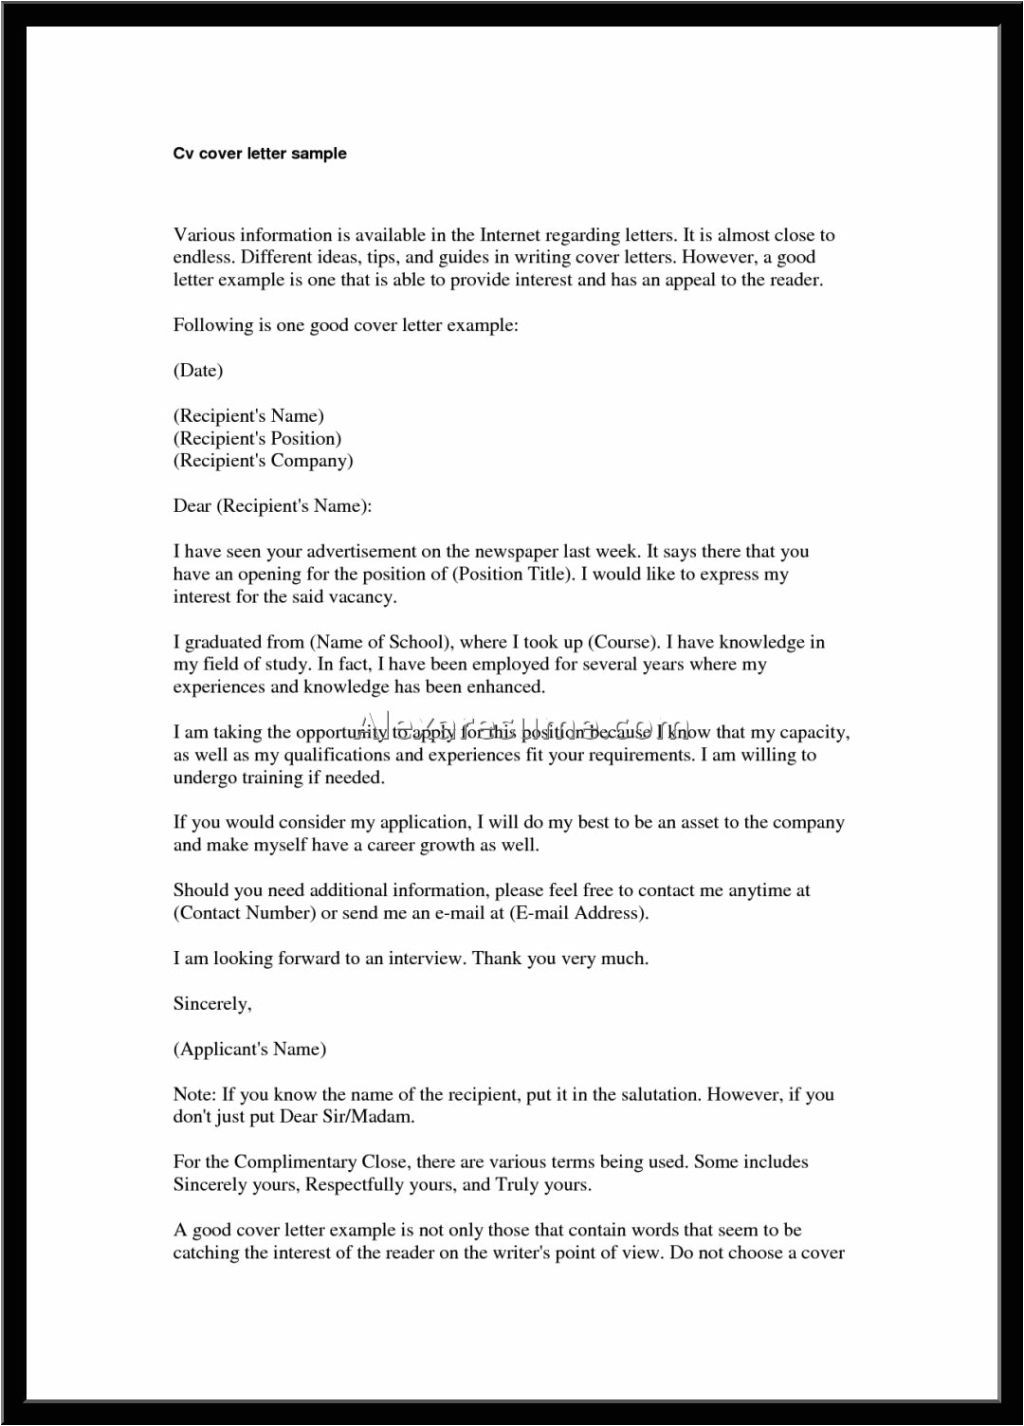 The Best Cover Letter Ever Written Best Good Cover Letter for Resume Letter format Writing